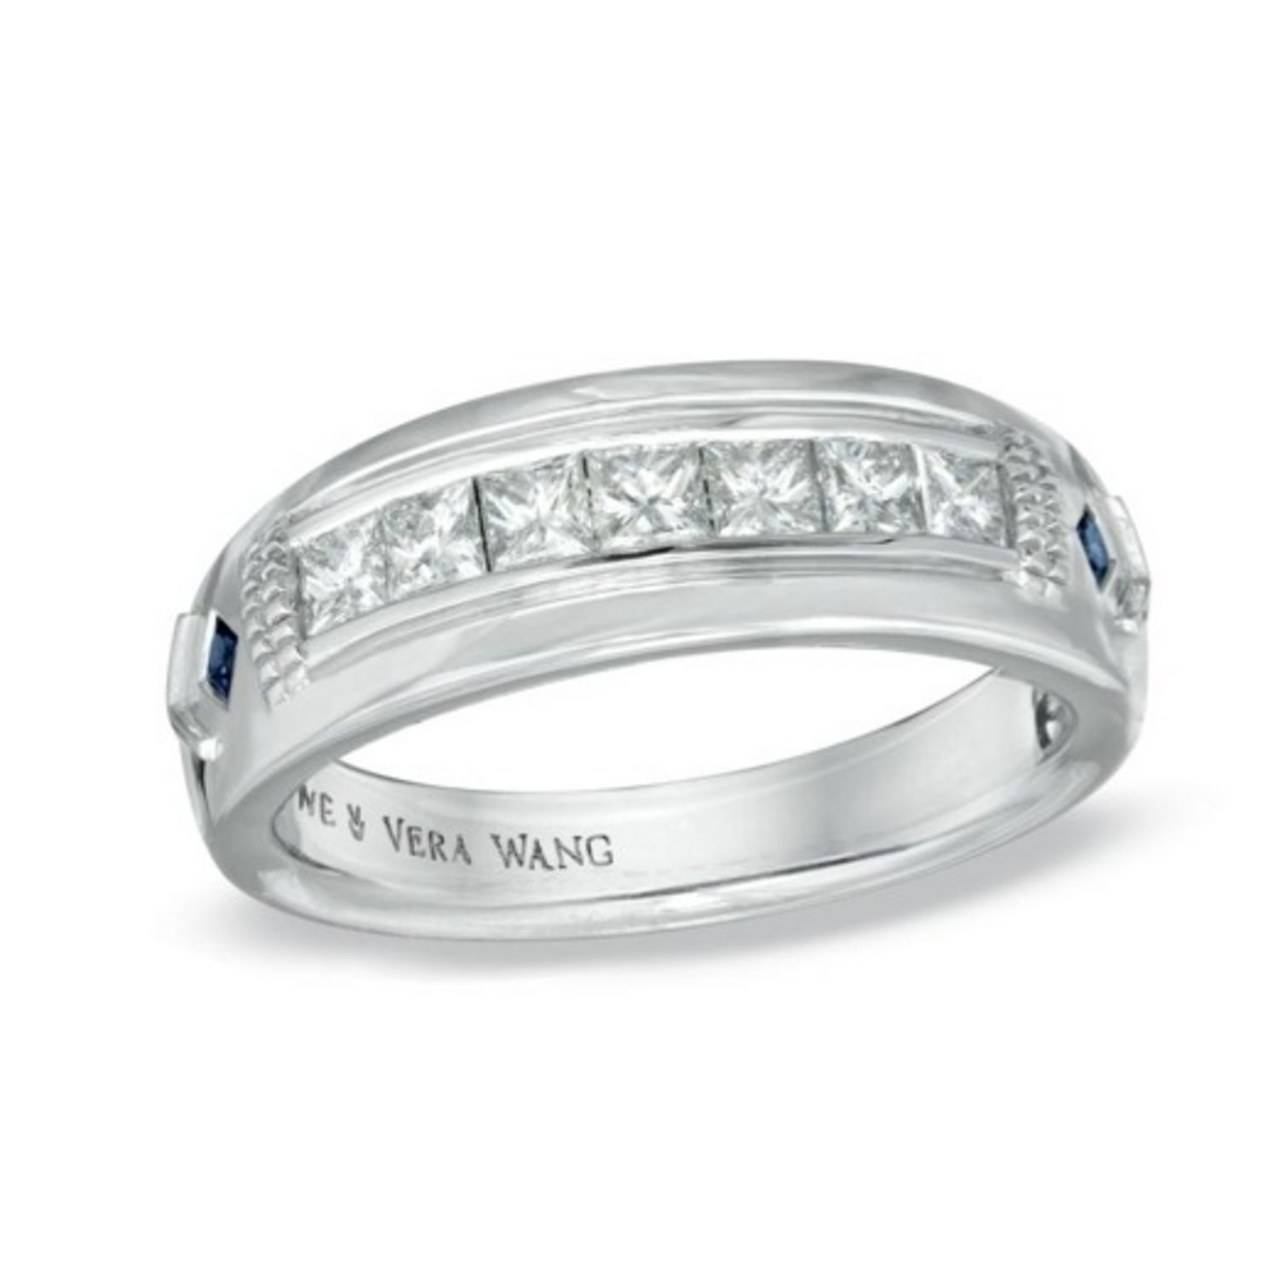 Bling Y Wedding Rings For Guys: Do Or Don't? (Apparently They're In Guys Wedding Bands (Gallery 281 of 339)